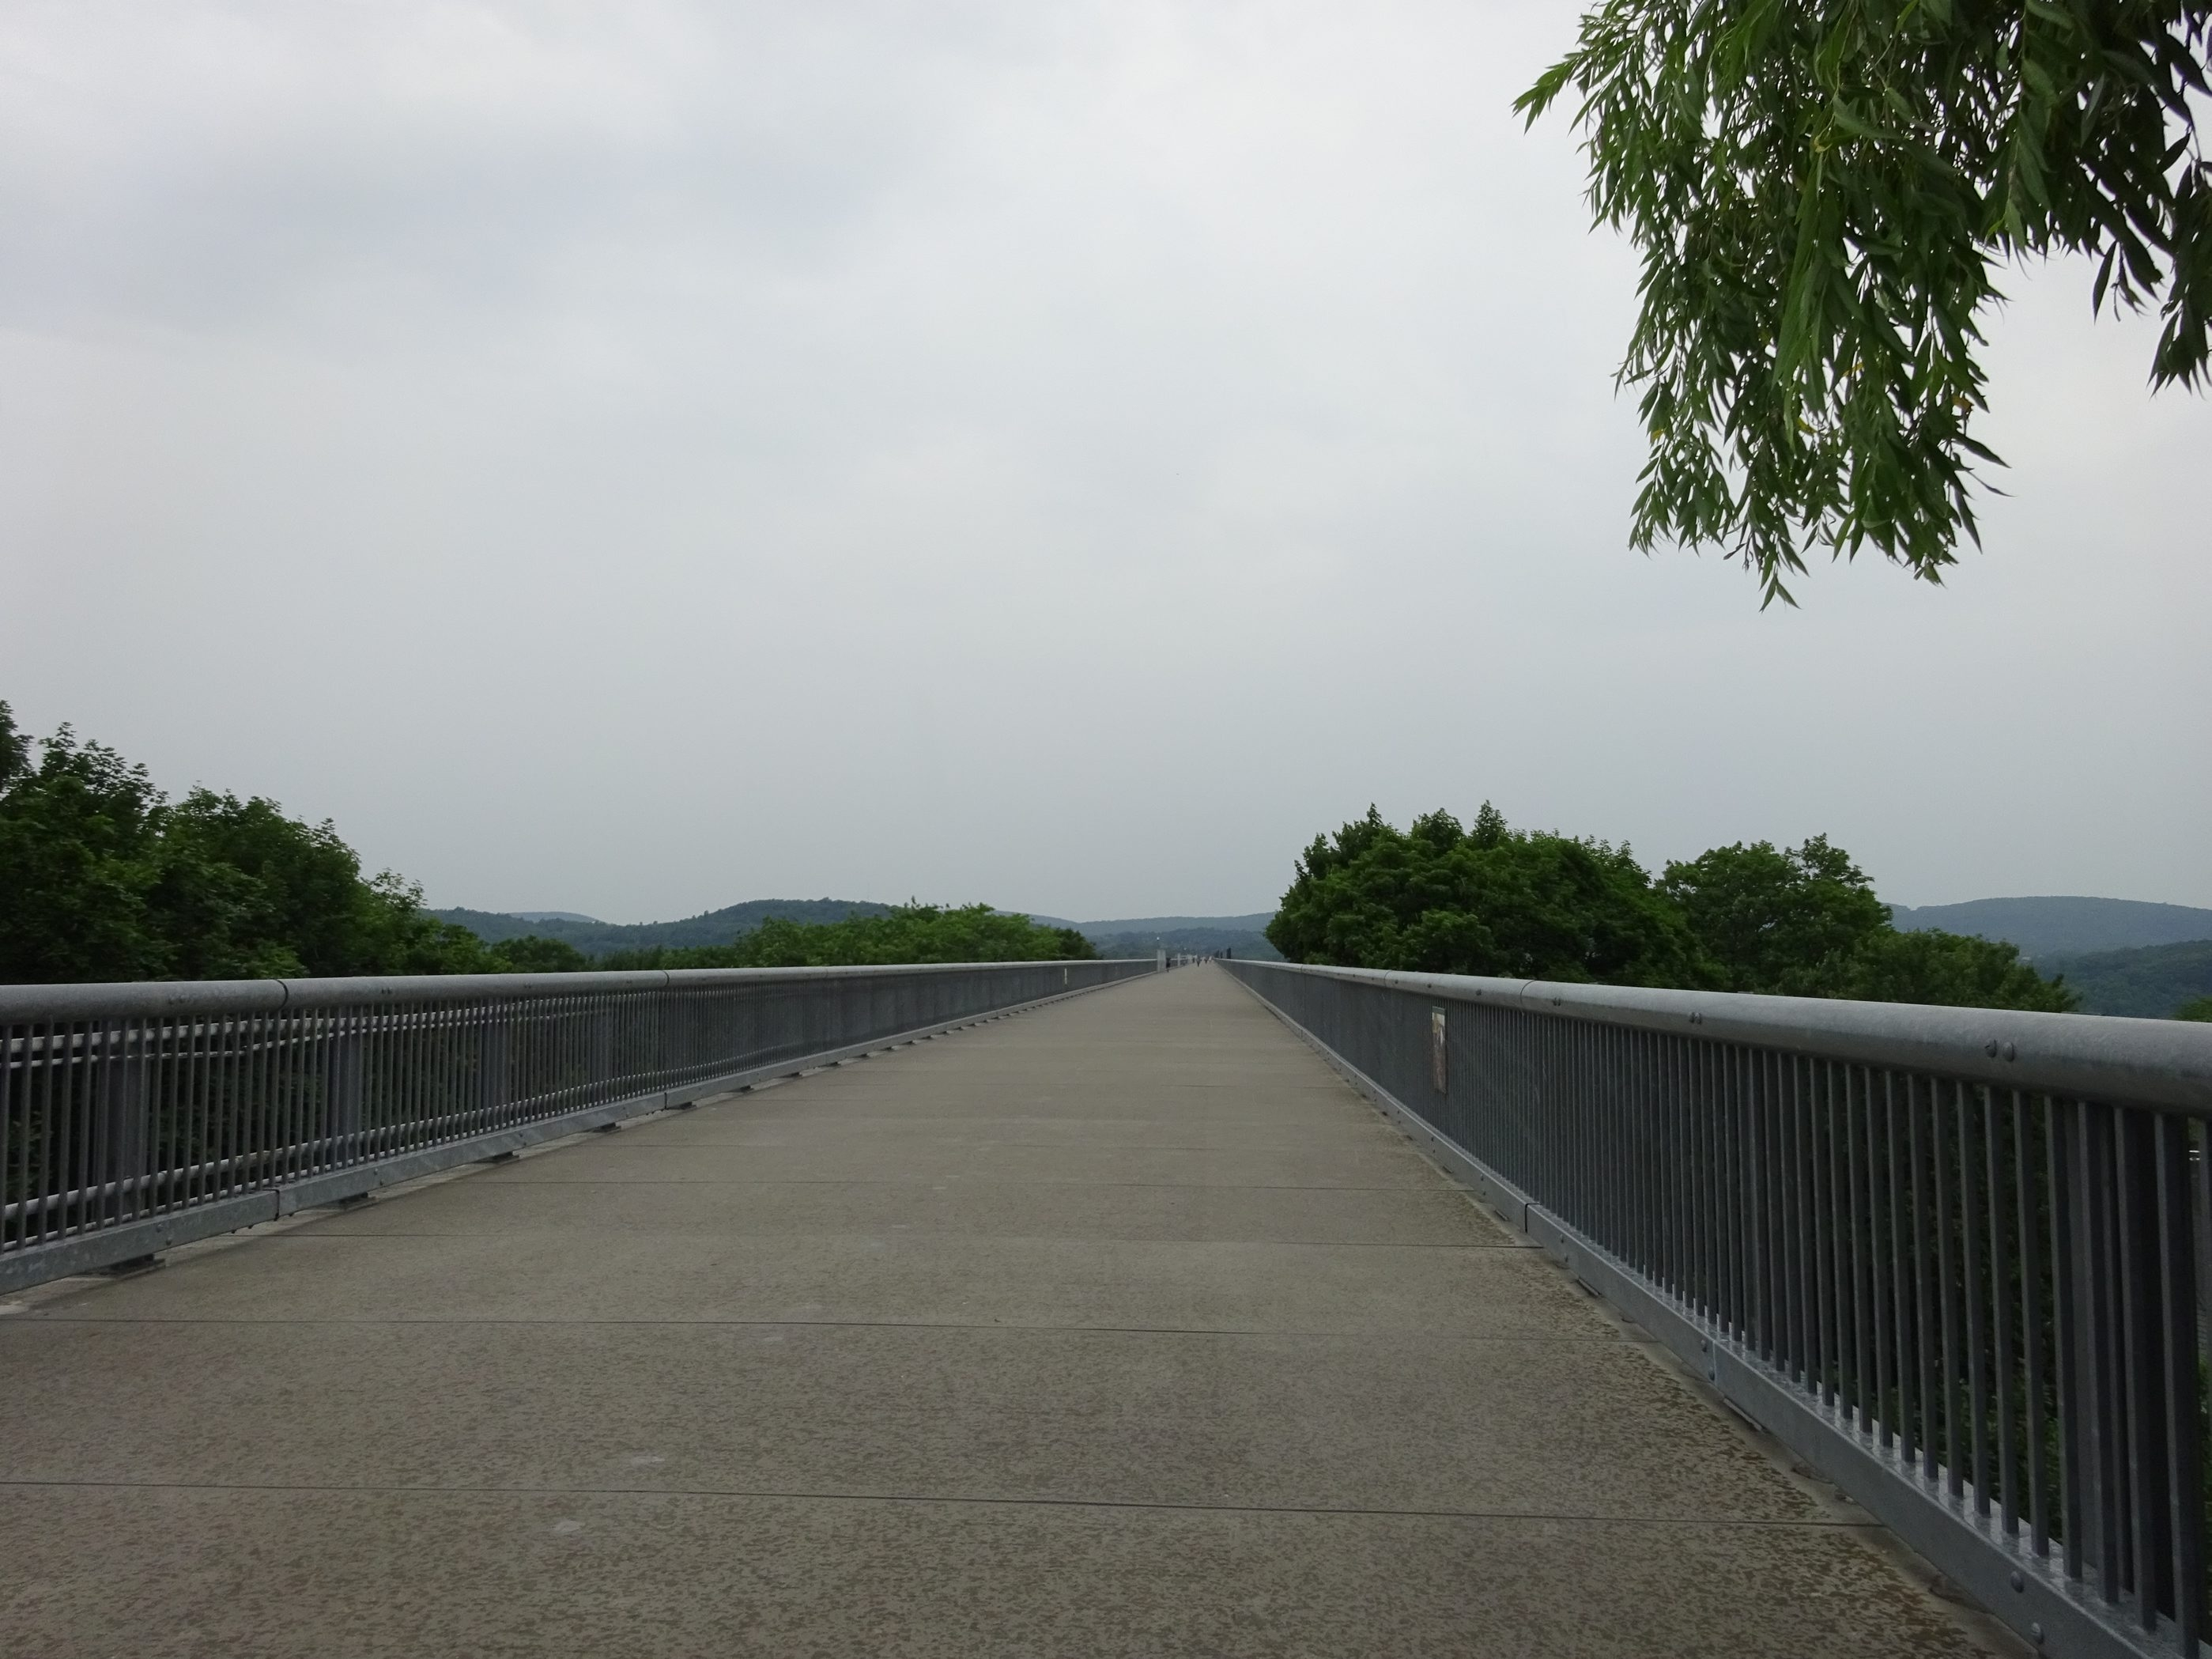 The Walkway Over the Hudson has been designated a National Historic Civil Engineering Landmark.